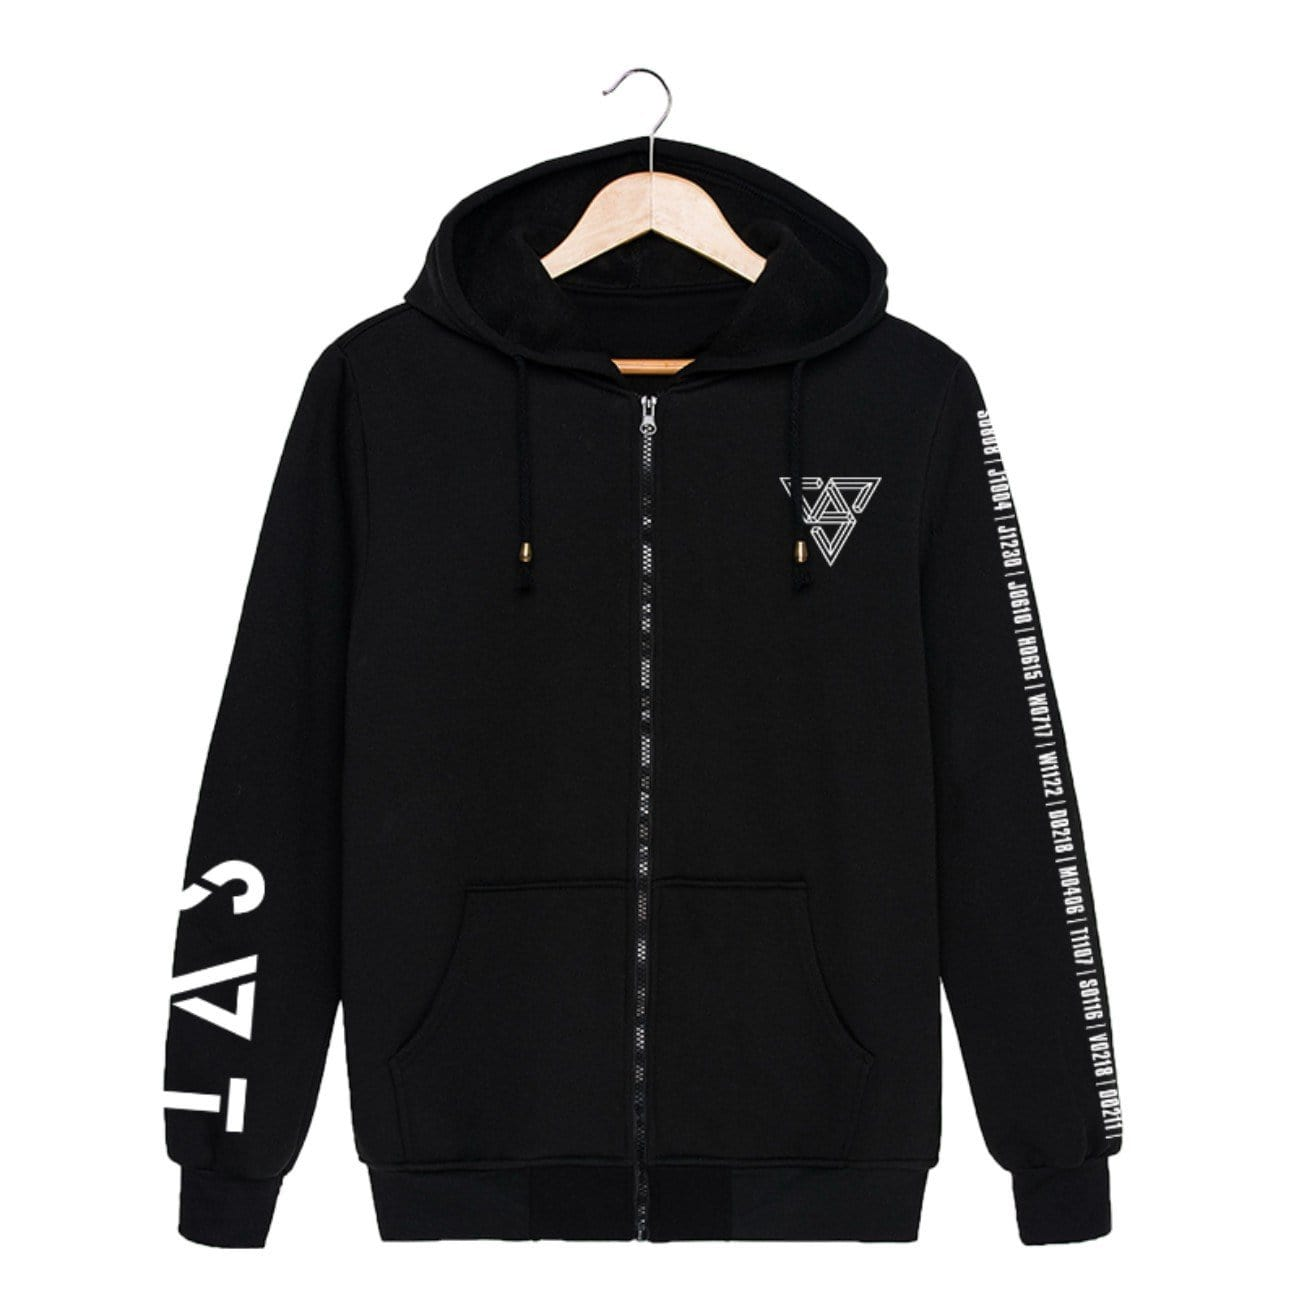 SEVENTEEN 2018 JAPAN ARENA SVT Zip Up Hoodie